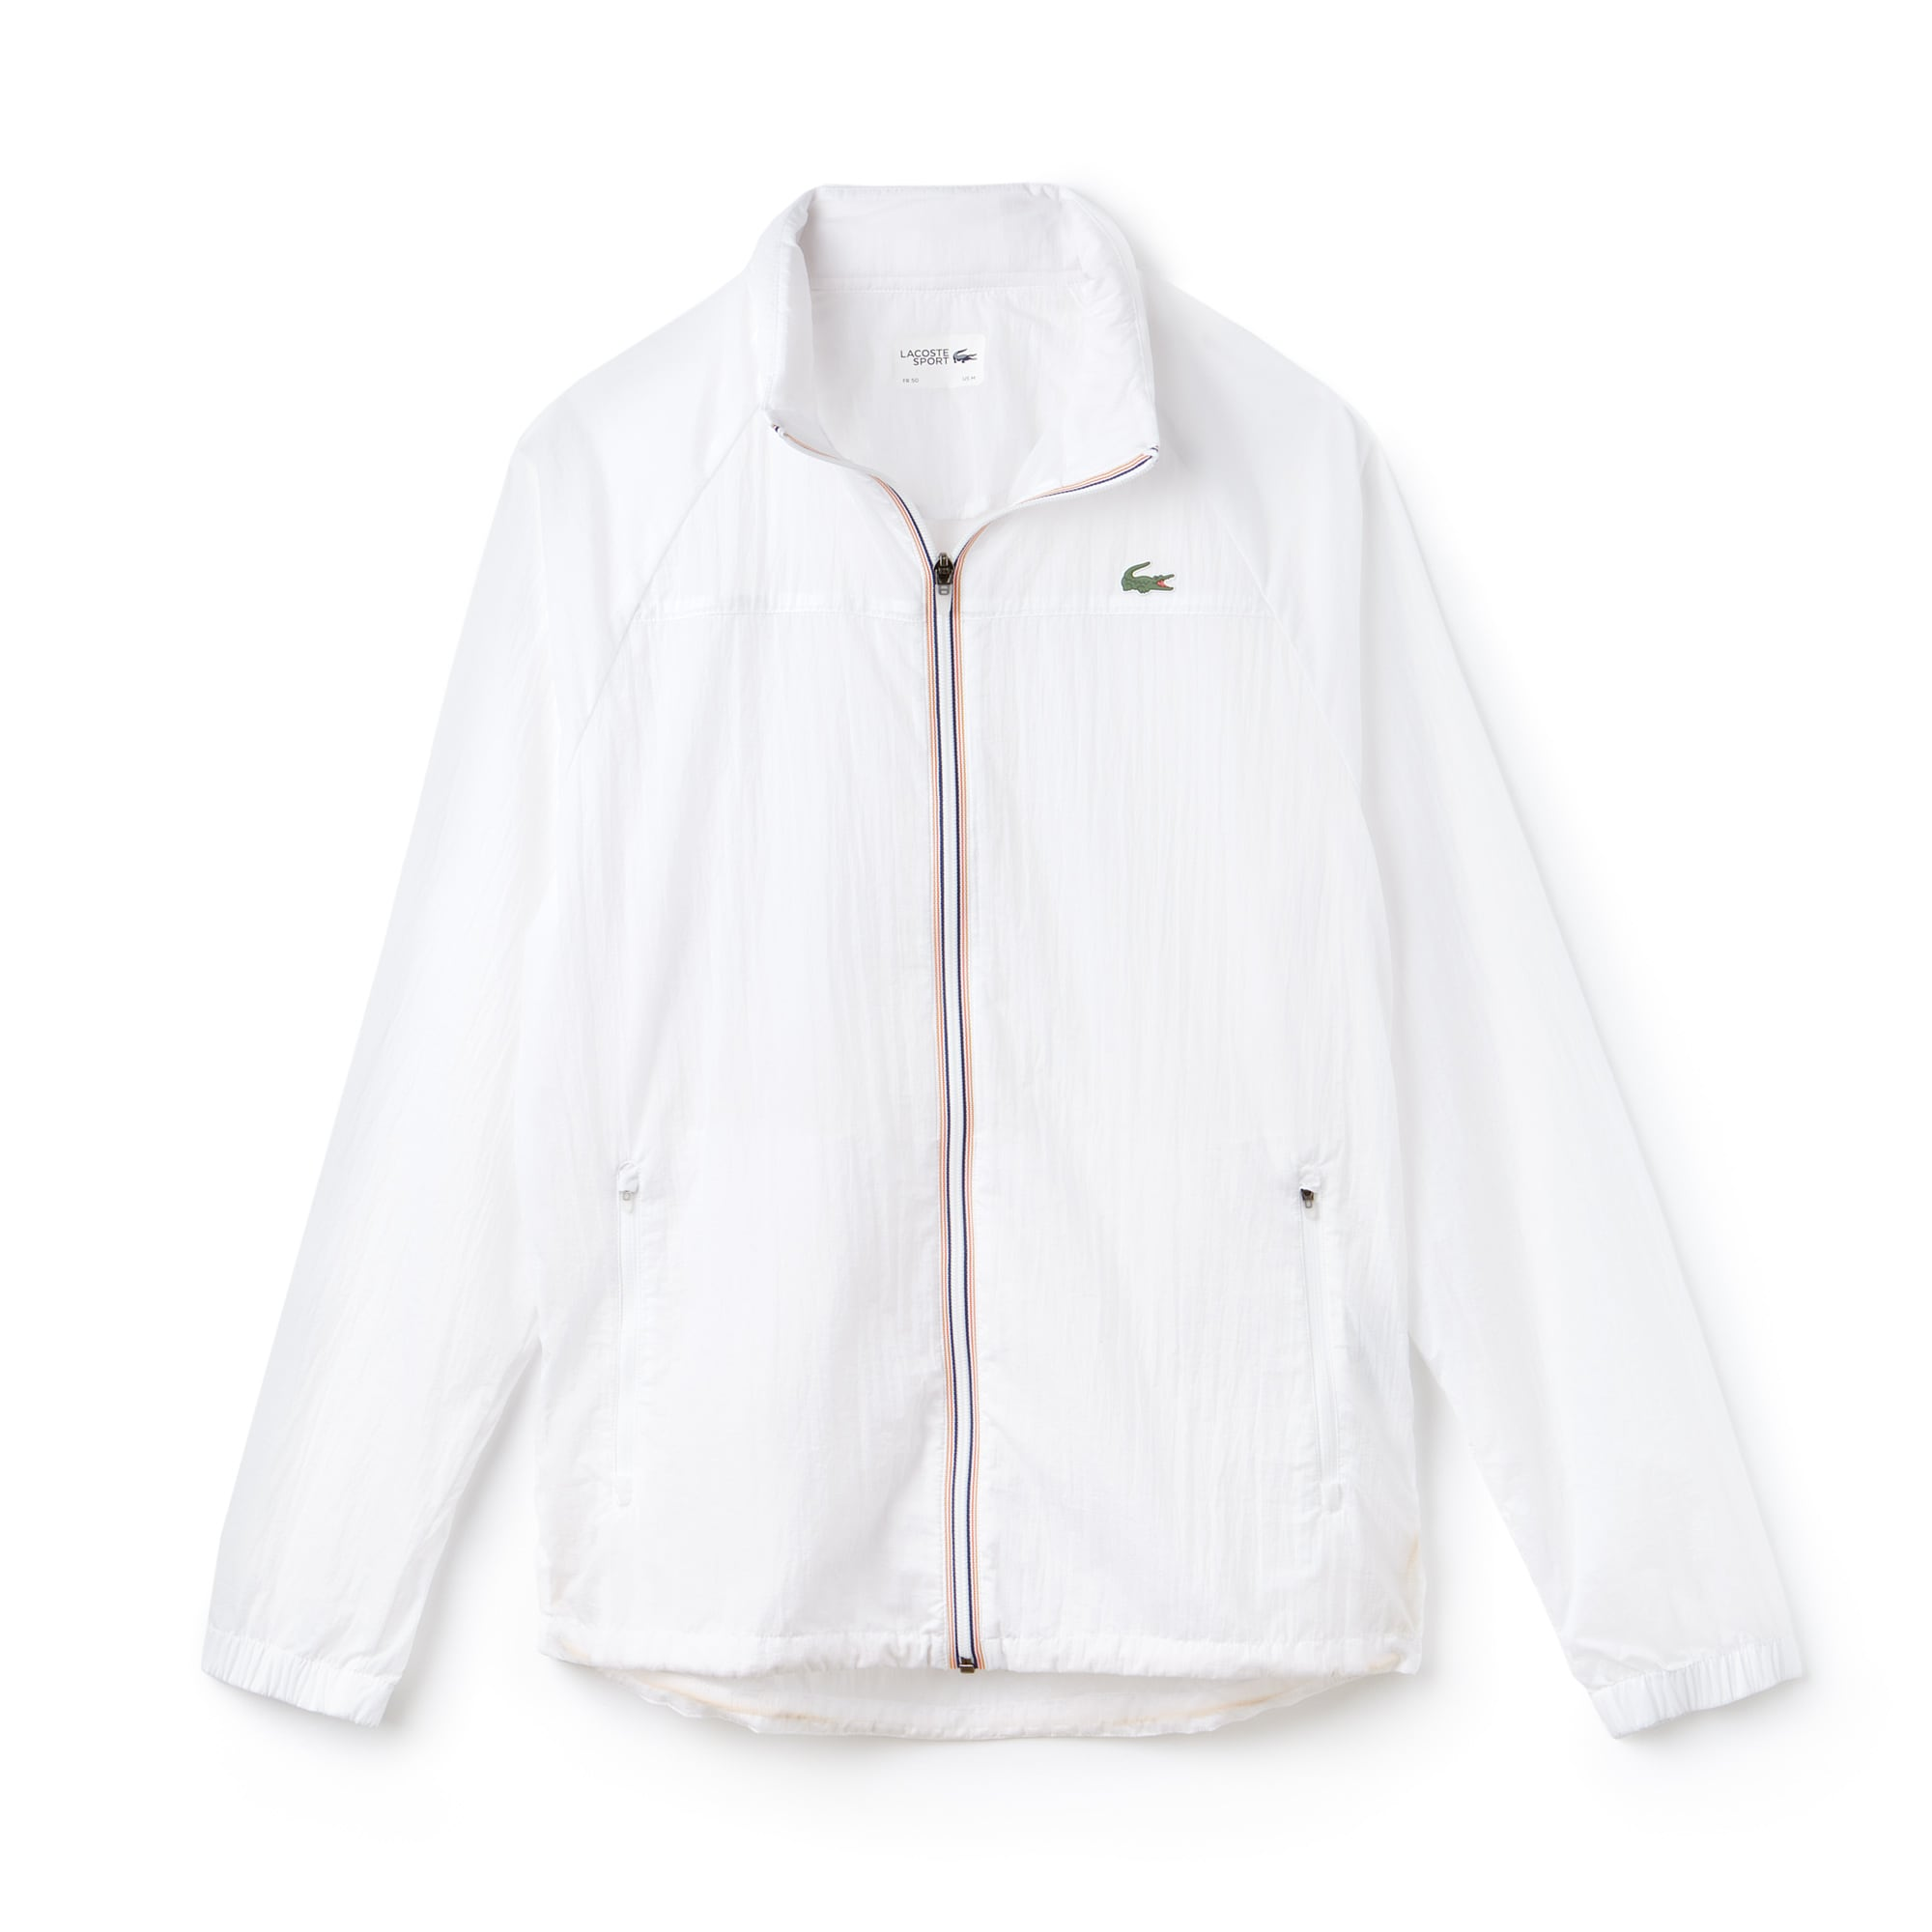 Men's Lacoste SPORT Concealed Hood Tech Tennis Windbreaker